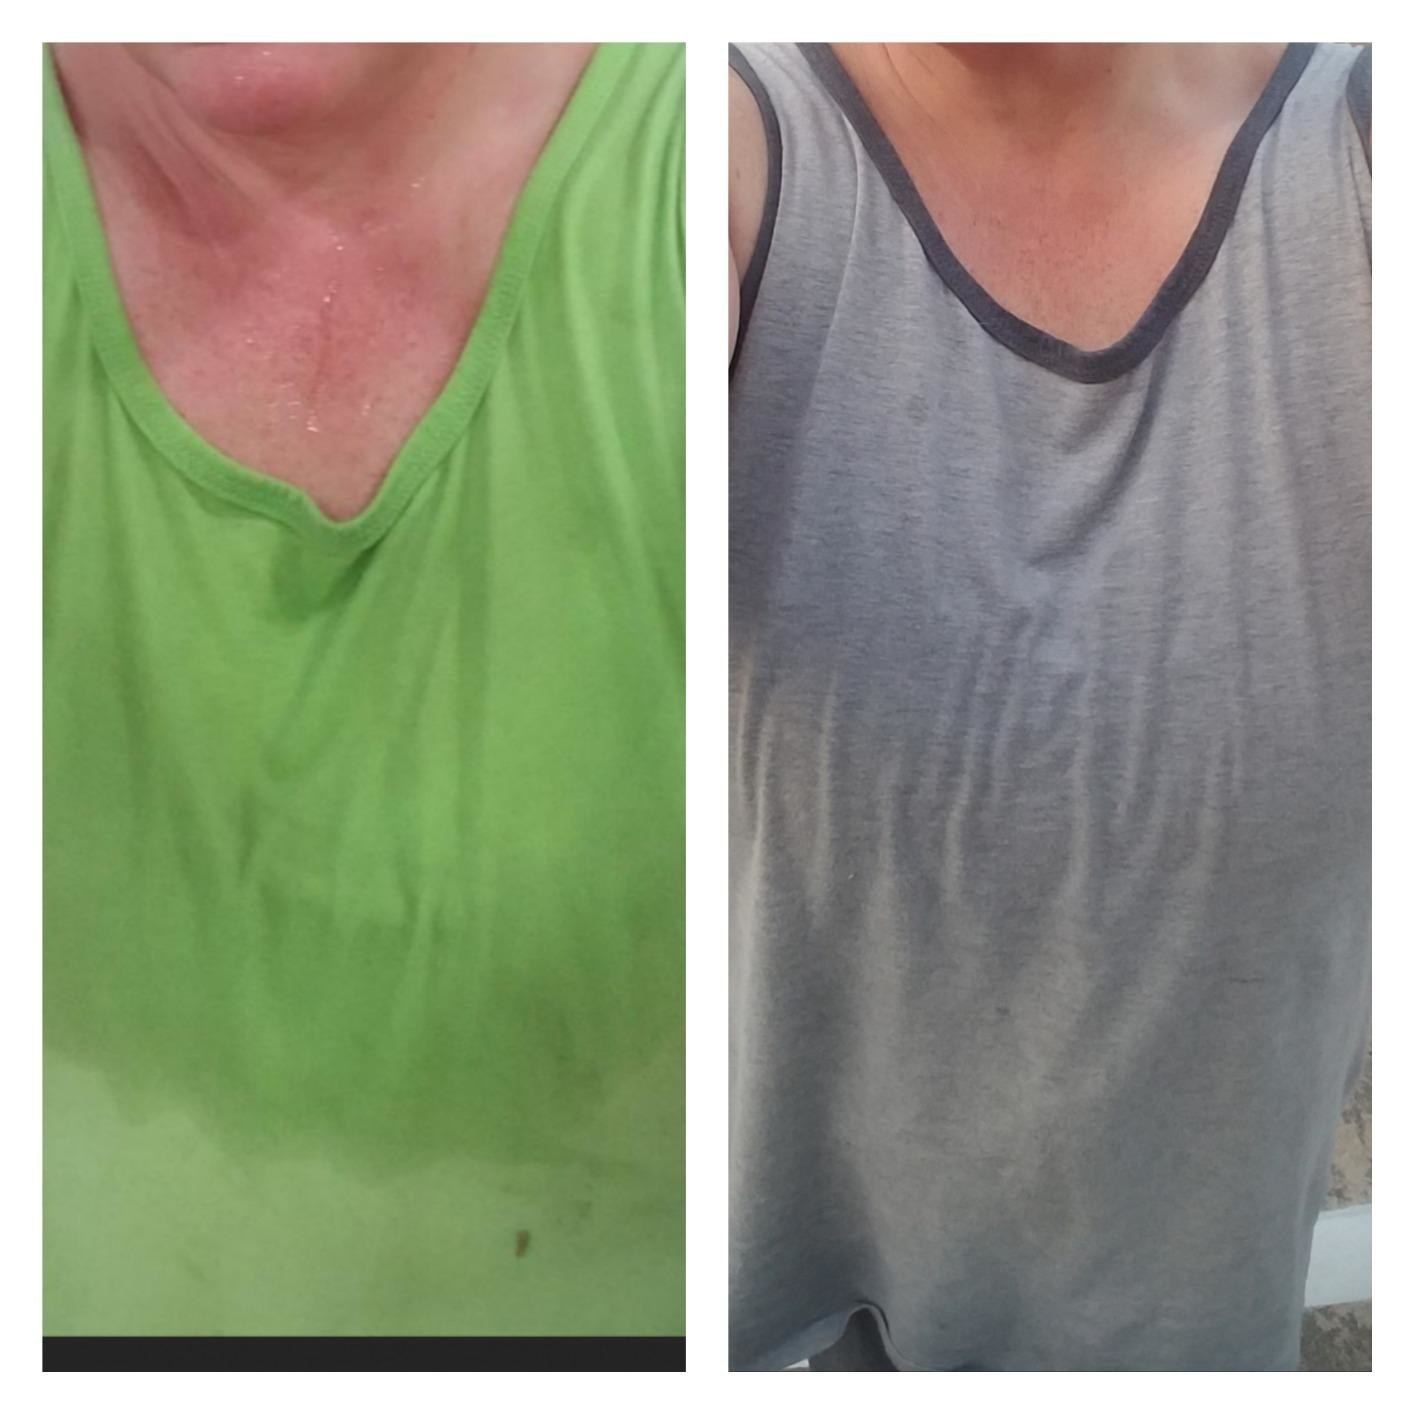 reviewer showing a green shirt drenched in sweat before using the wipes and a gray shirt completely dry after using the wipes